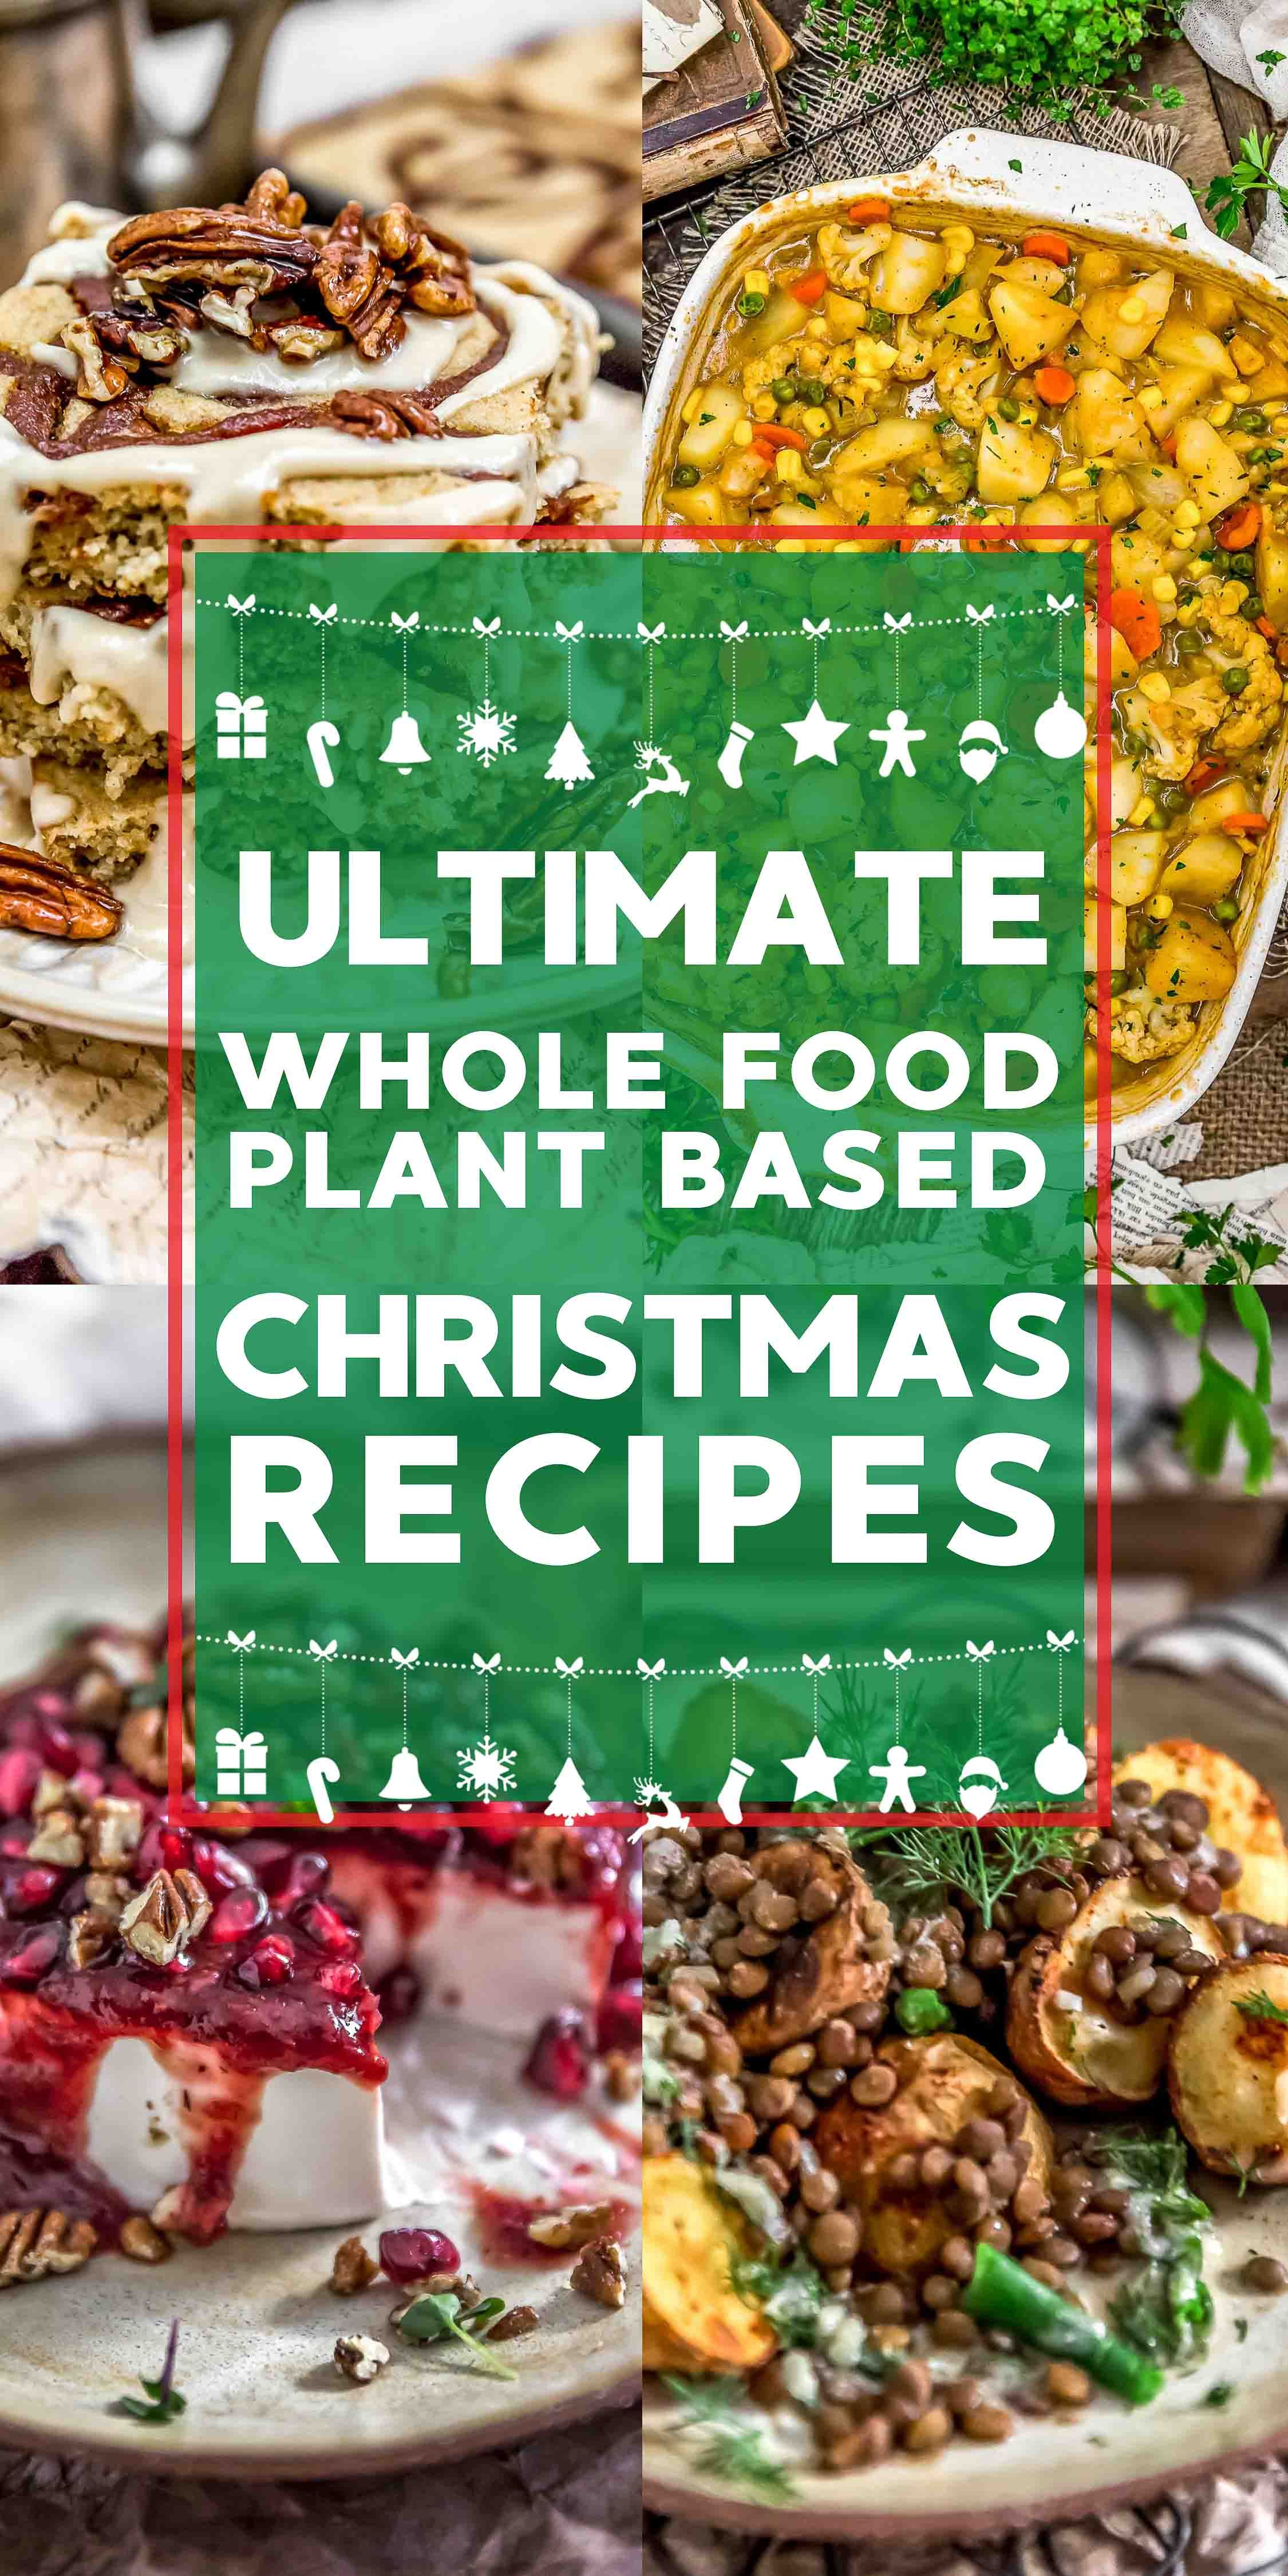 Whole Food Plant Based Christmas Recipes (With images